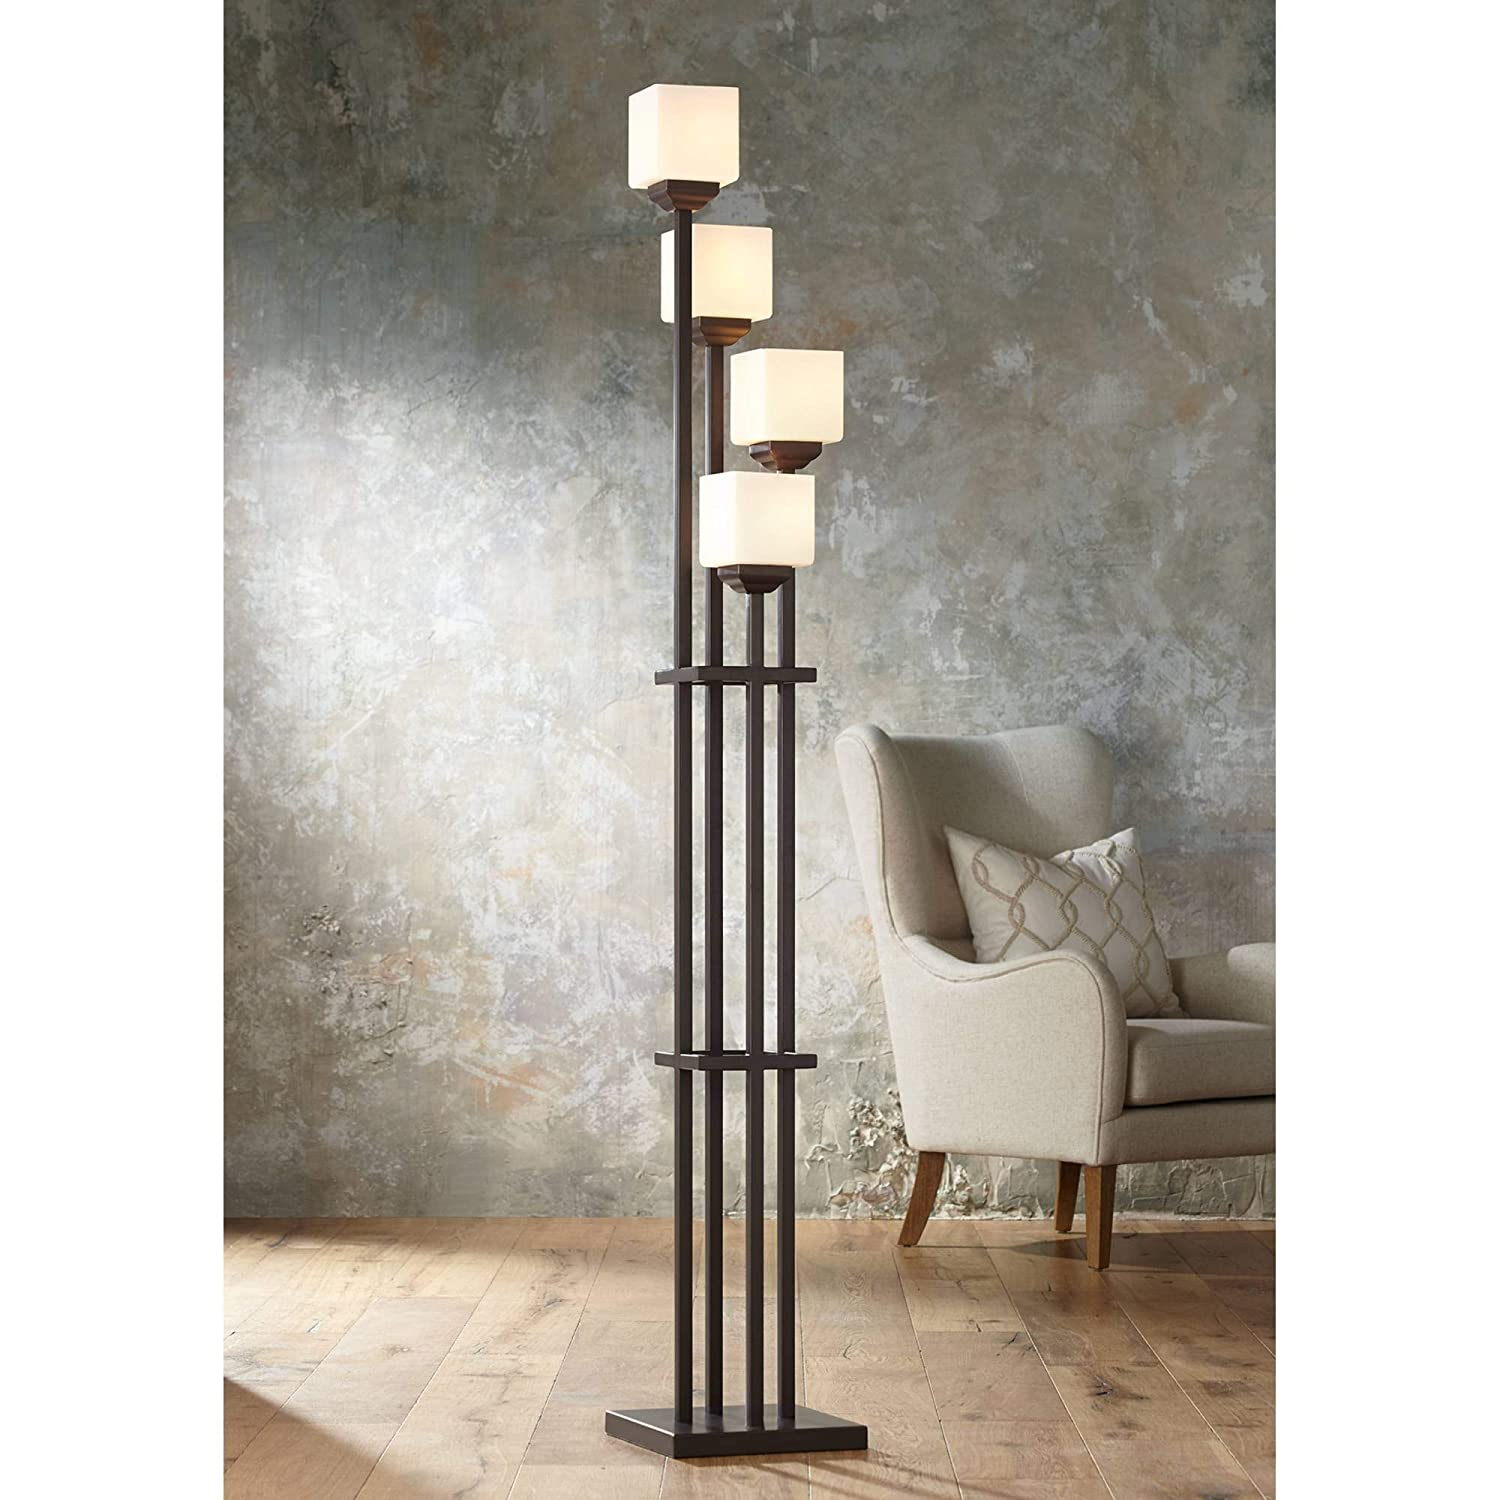 Light Tree Mission Torchiere Floor Lamp 4-Light Bronze Iron Square-Sided White Glass Shades for Living Room Bedroom – Franklin Iron Works